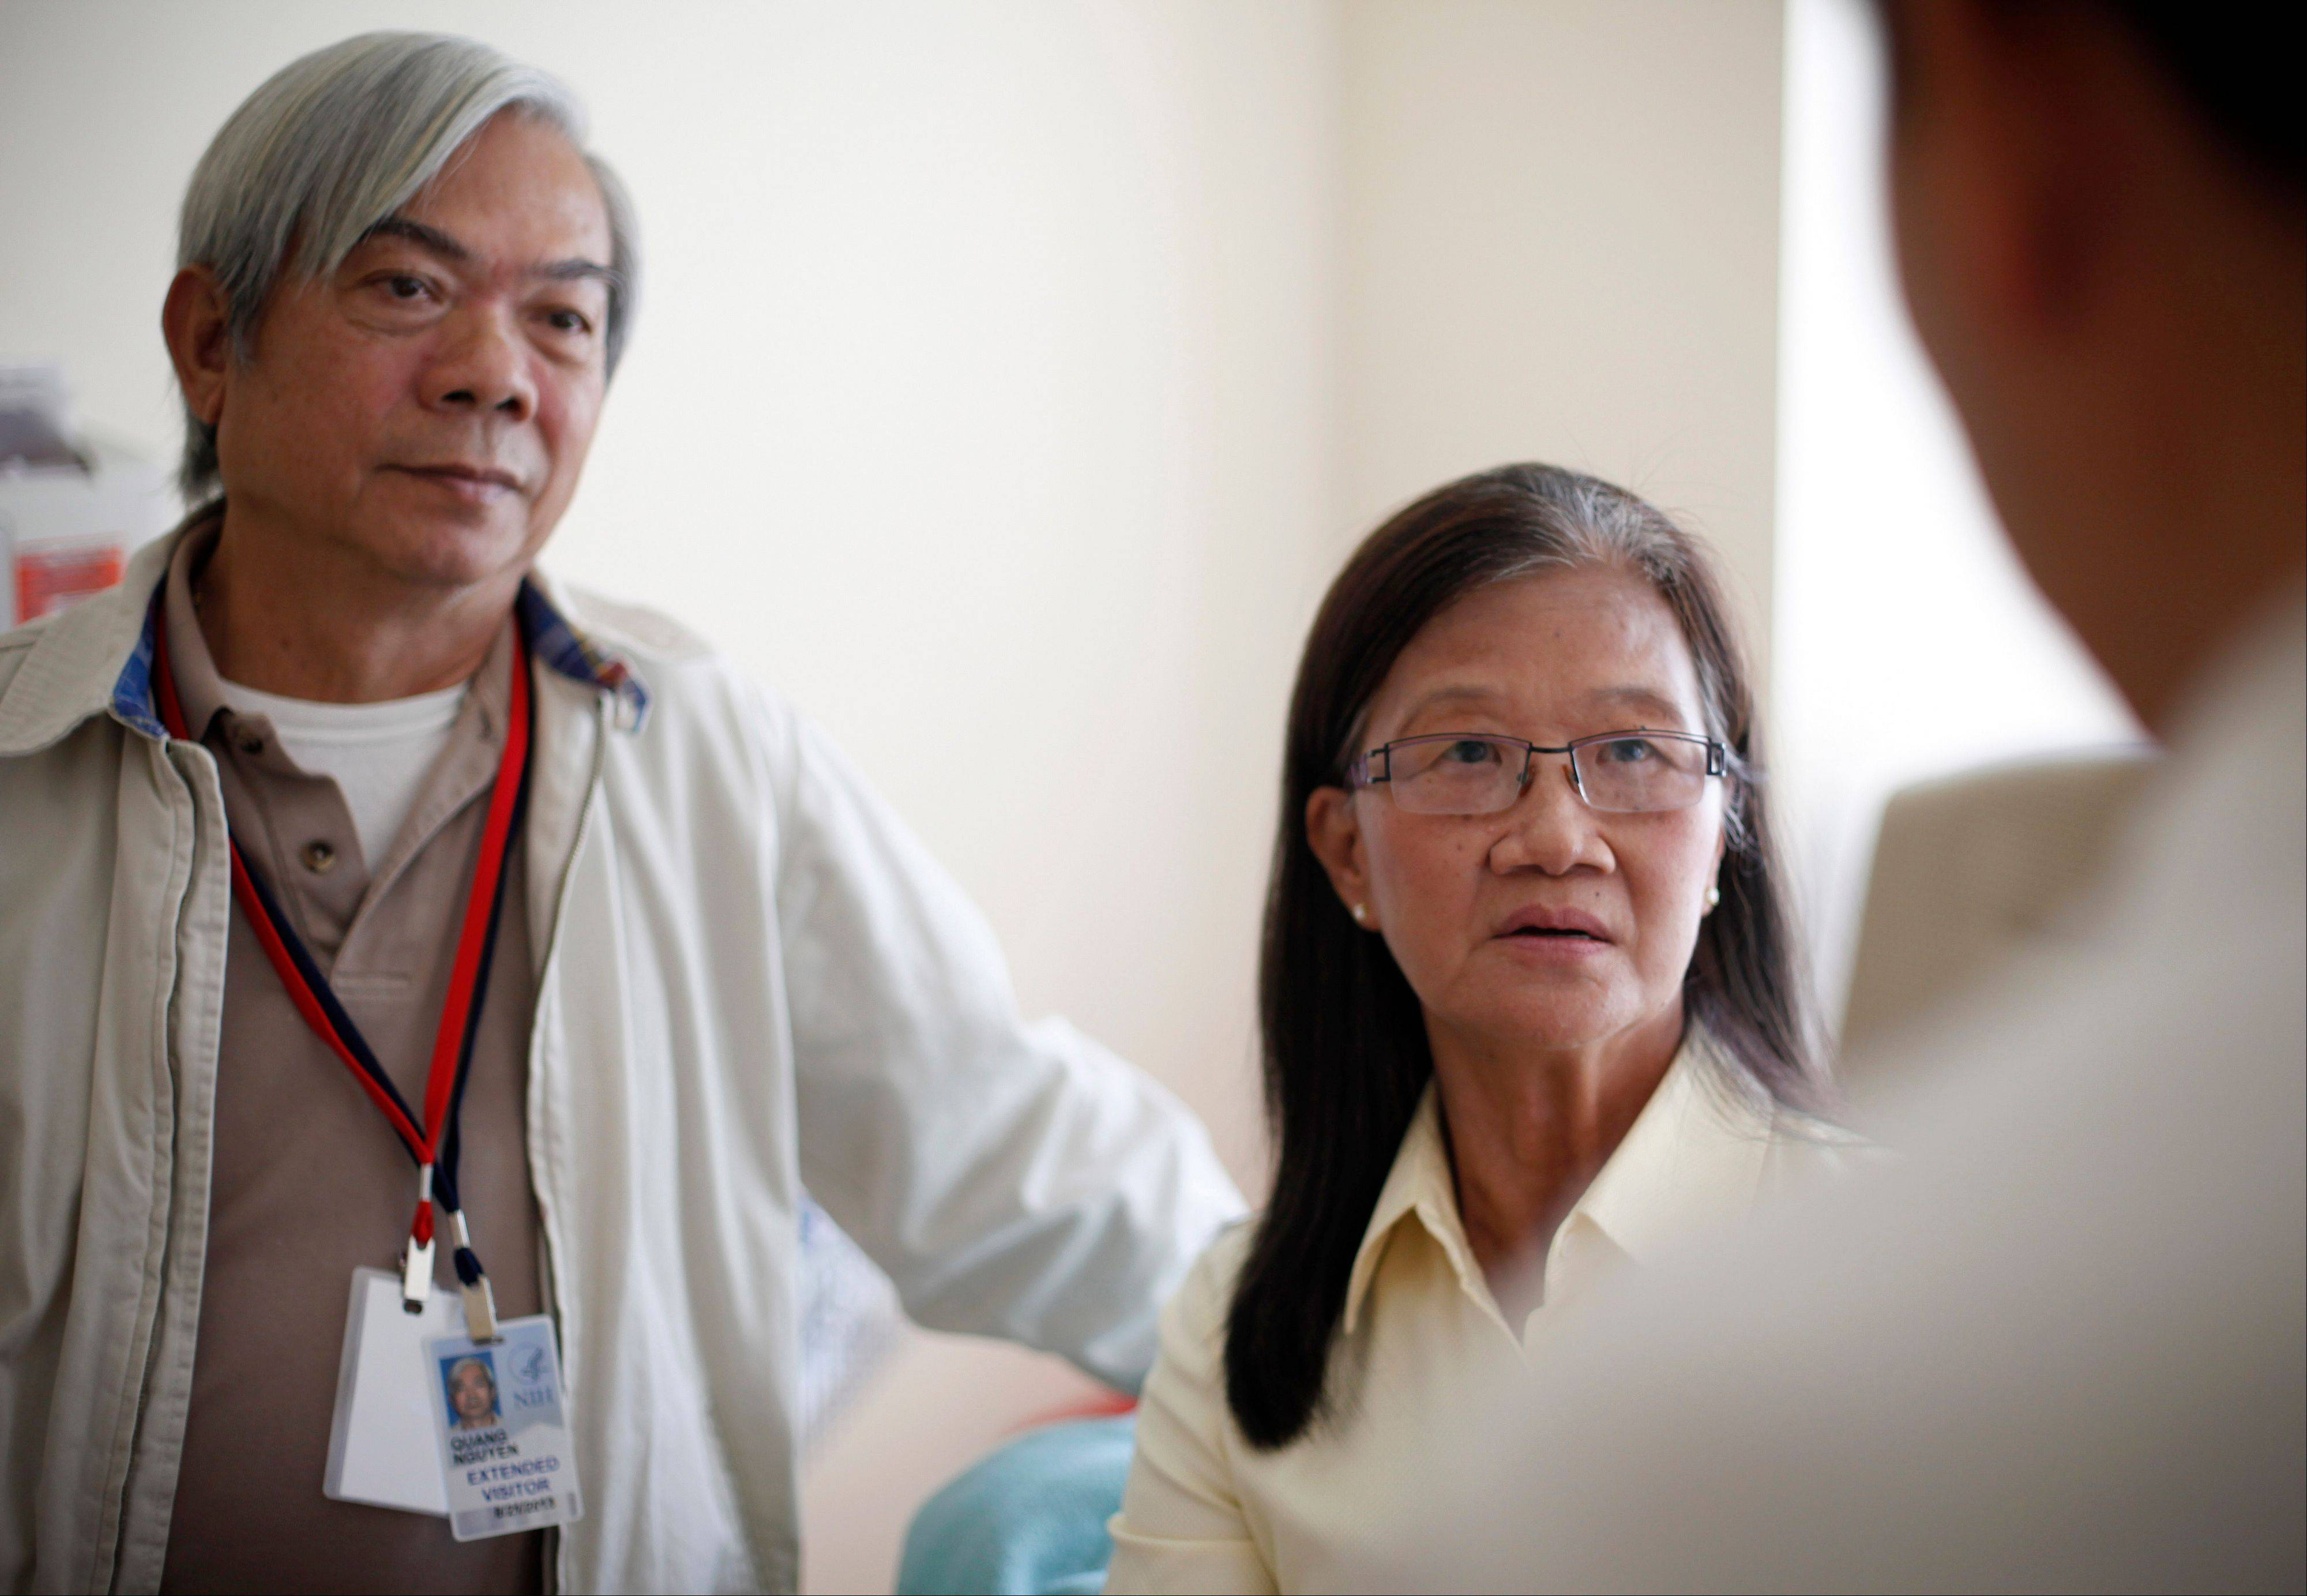 Patient Kim Nguyen, right, and her husband Quang Nguyen at the National Institutes of Health in Bethesda, Md. Researchers have identified a mysterious new disease that has left scores of people in Asia and some in the United States with AIDS-like symptoms even though they are not infected with HIV.